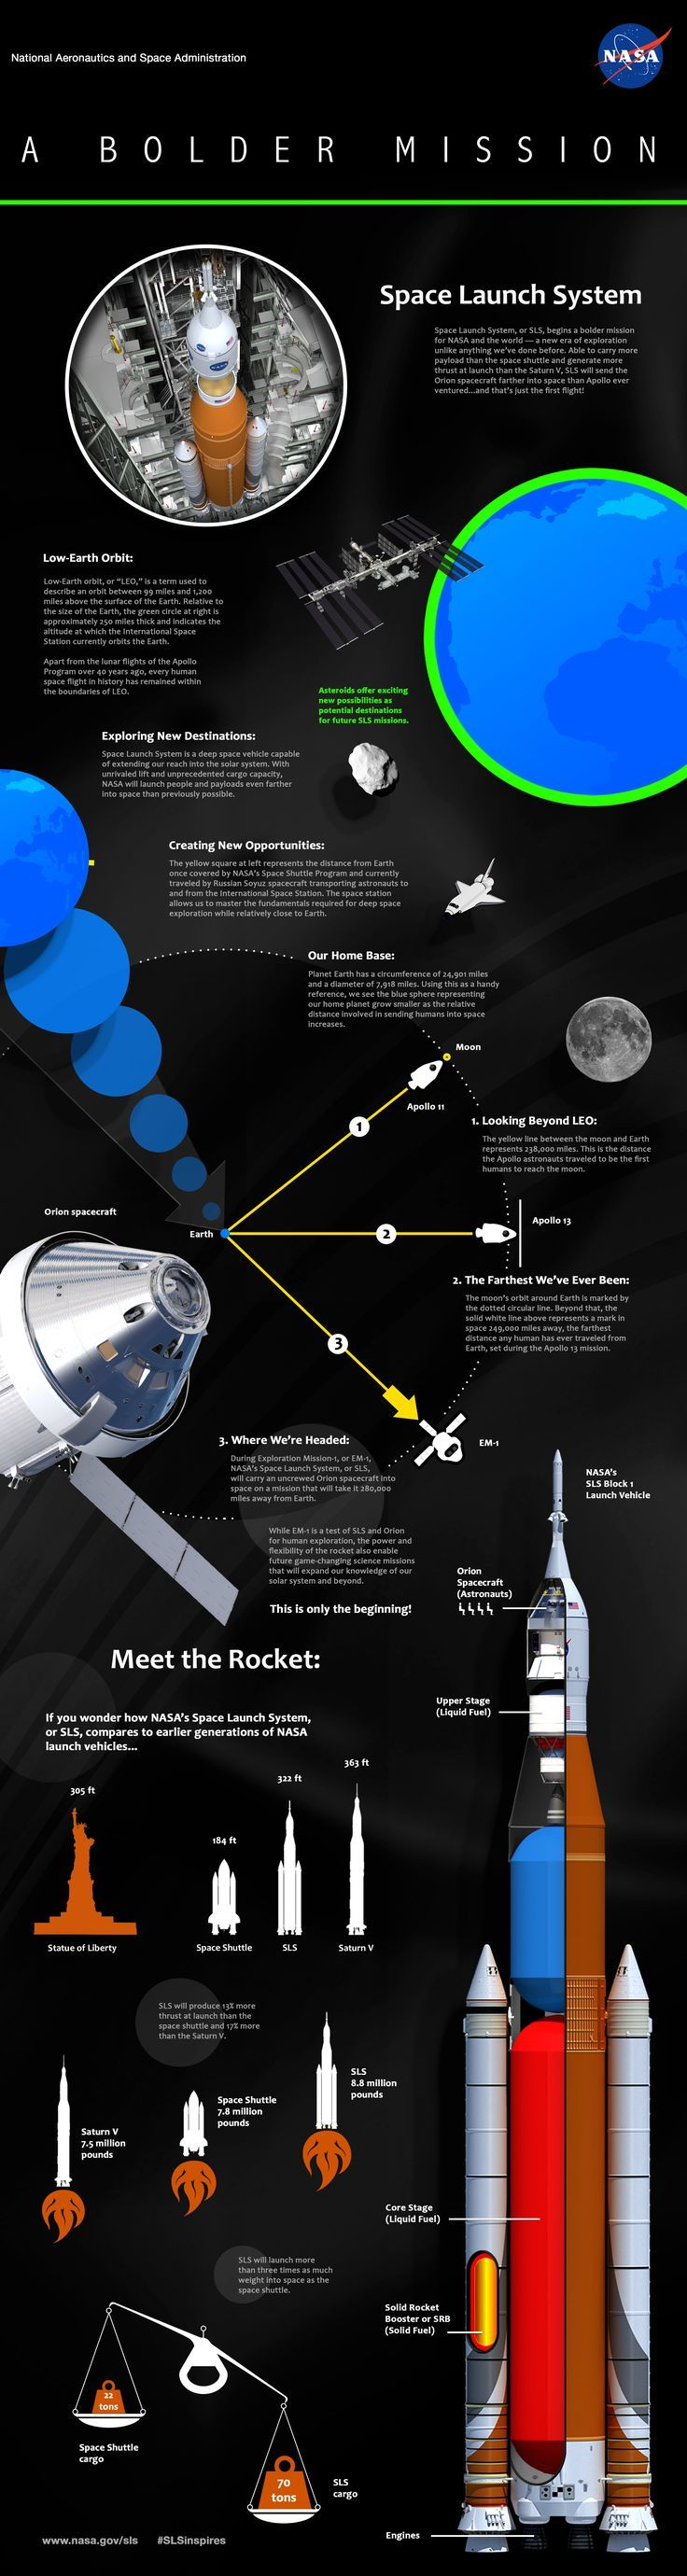 Space Launch System, or SLS, begins a bolder mission for NASA and the world -- a new era of exploration unlike anything we've done before.